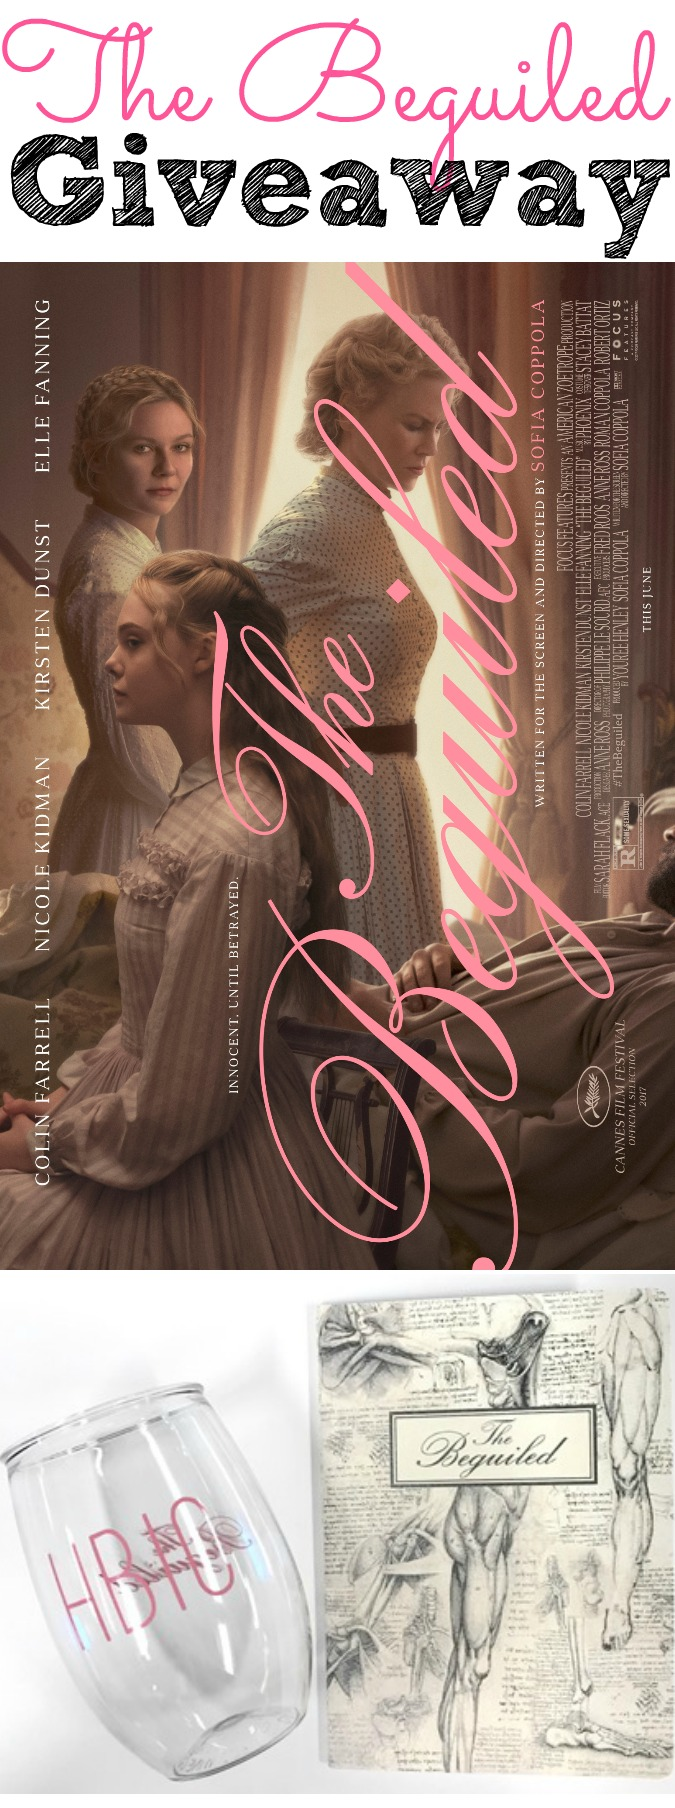 The Beguiled Movie Giveaway #VengefulB*tches - abccreativelearning.com